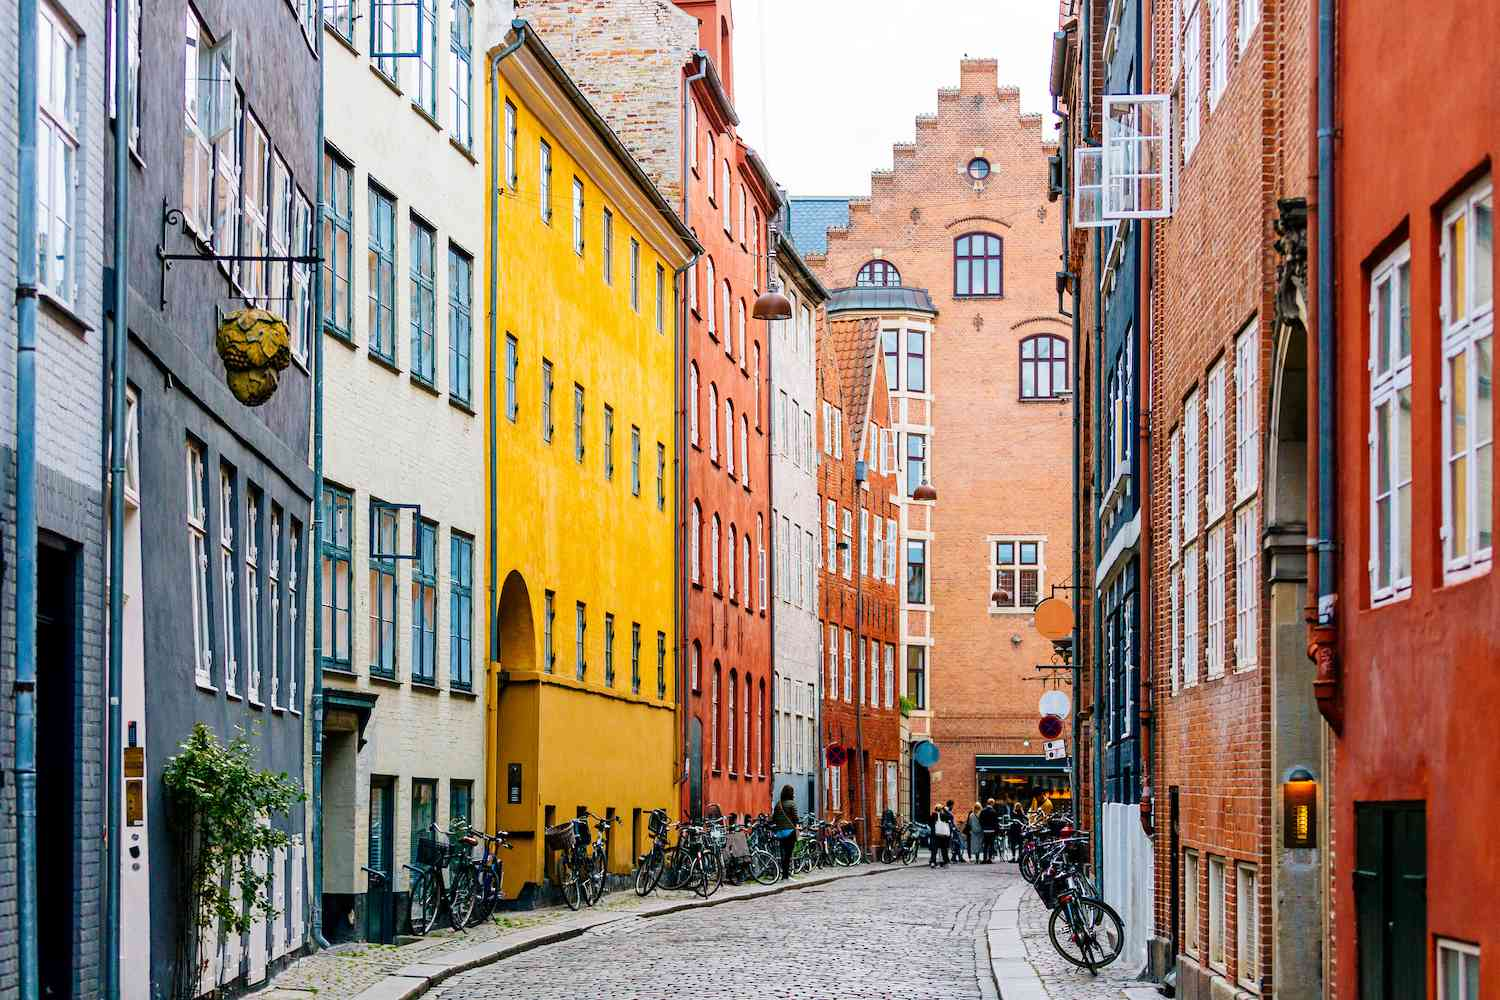 Colorful buildings on a cobbled road lined with bicycles